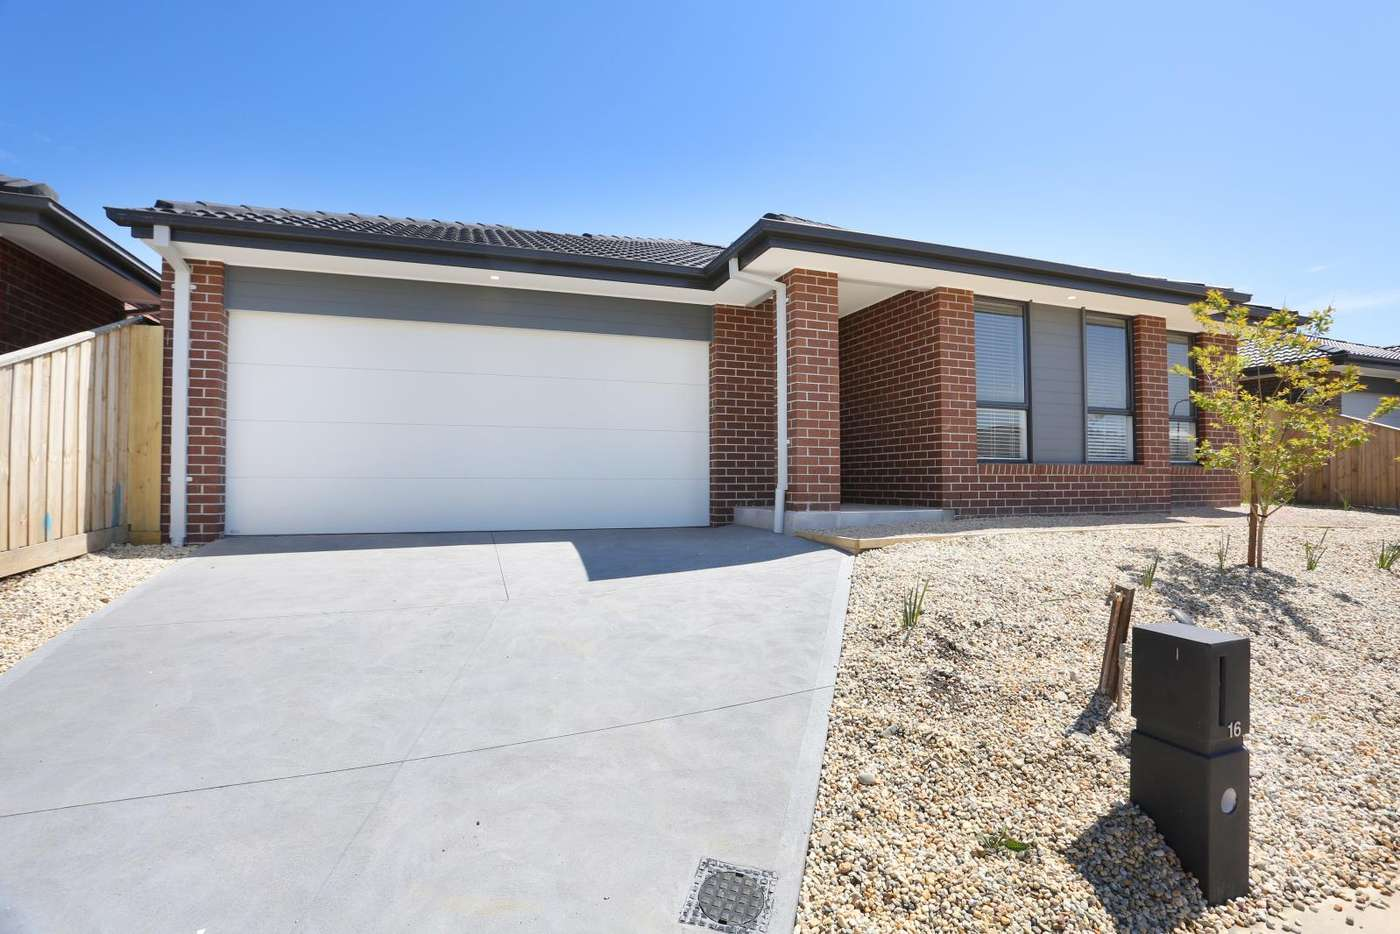 Main view of Homely house listing, 16 Oliver Street, Doreen VIC 3754